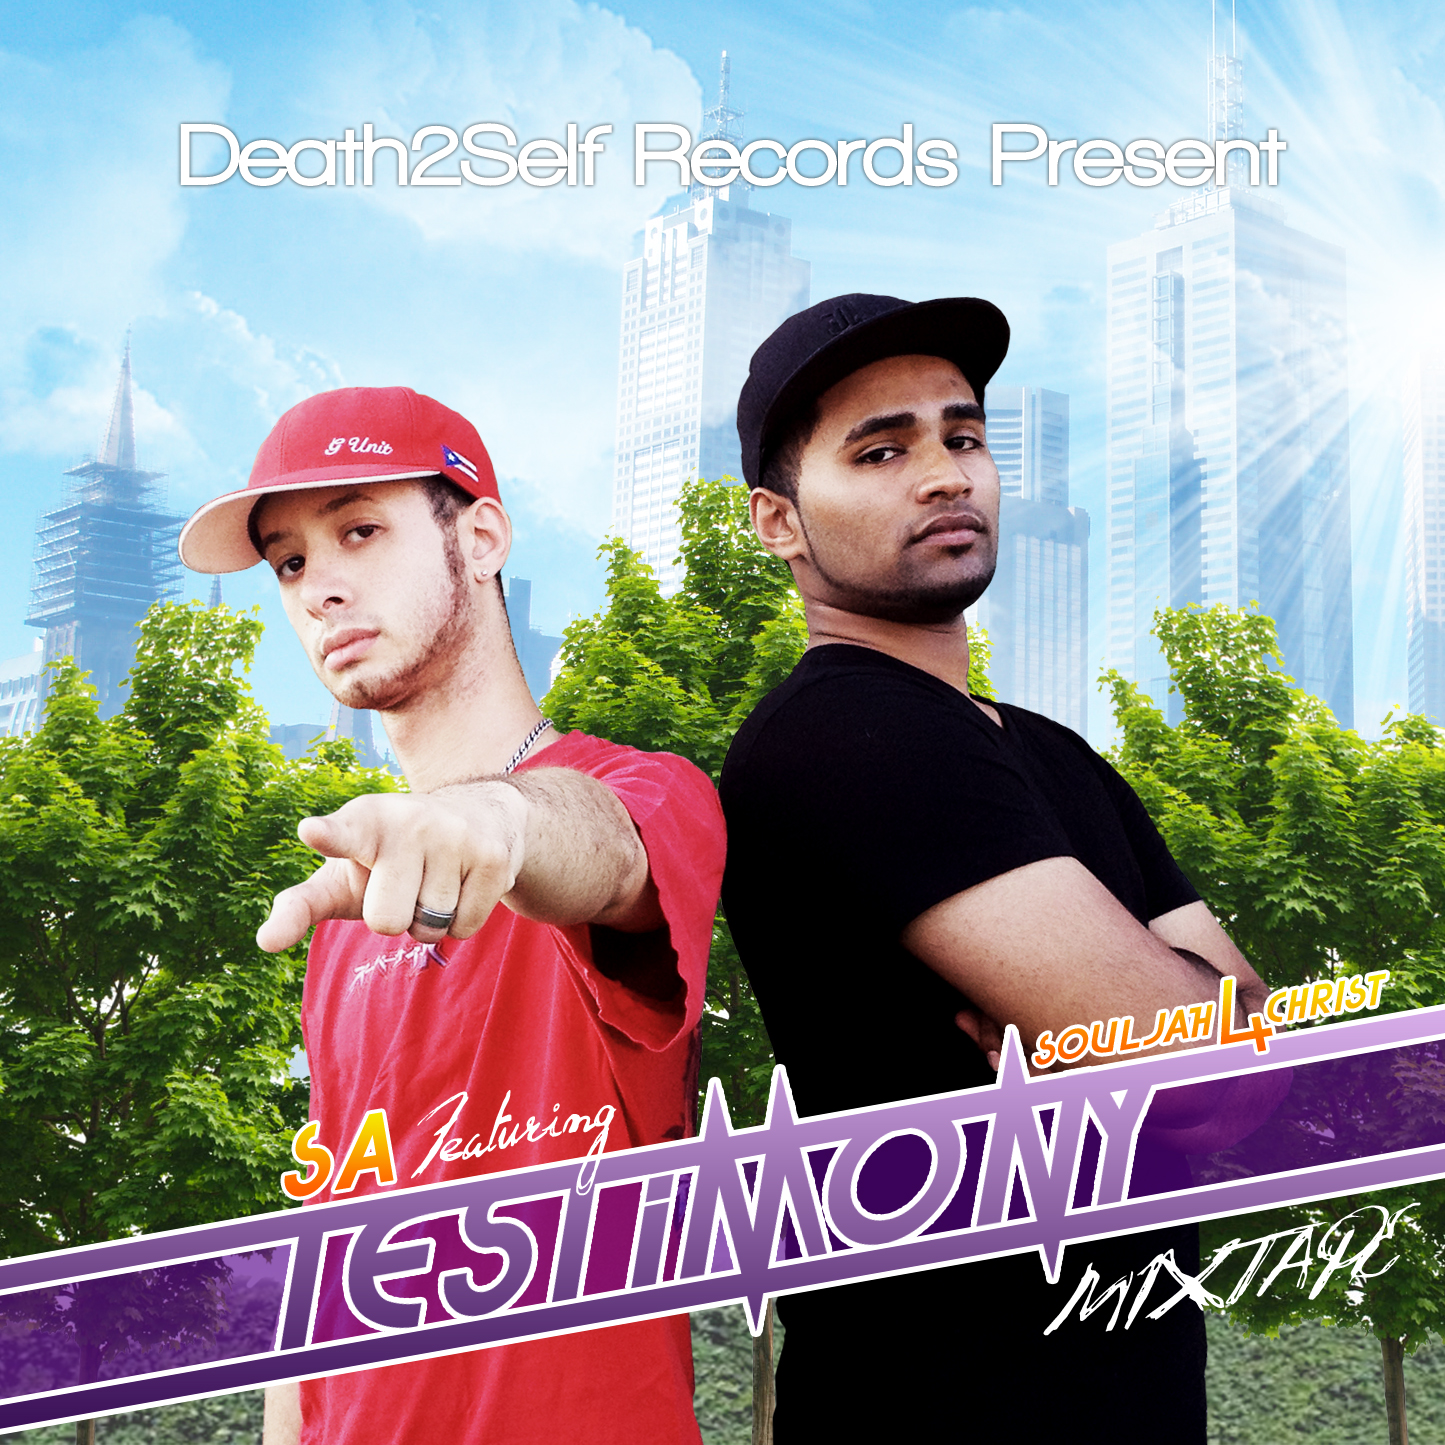 The Testimony Mixtape